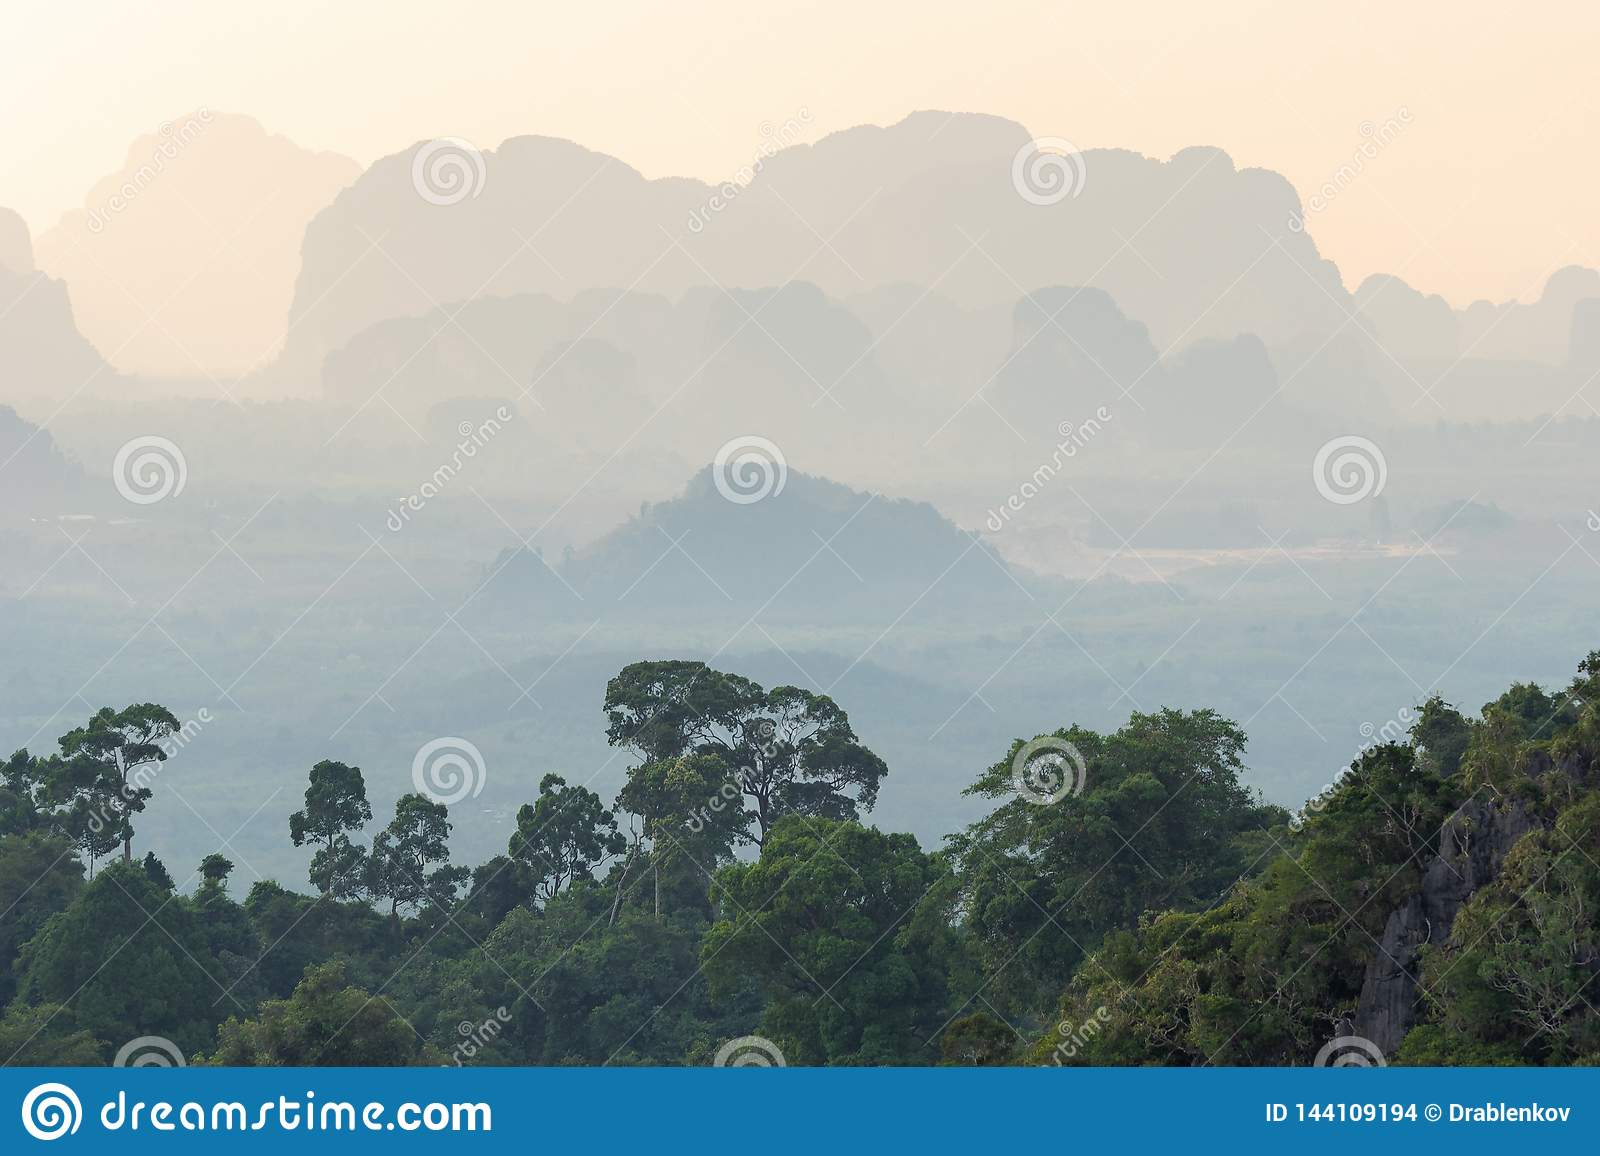 Landscape of tropical hazy mountains perspective and the green jungle trees